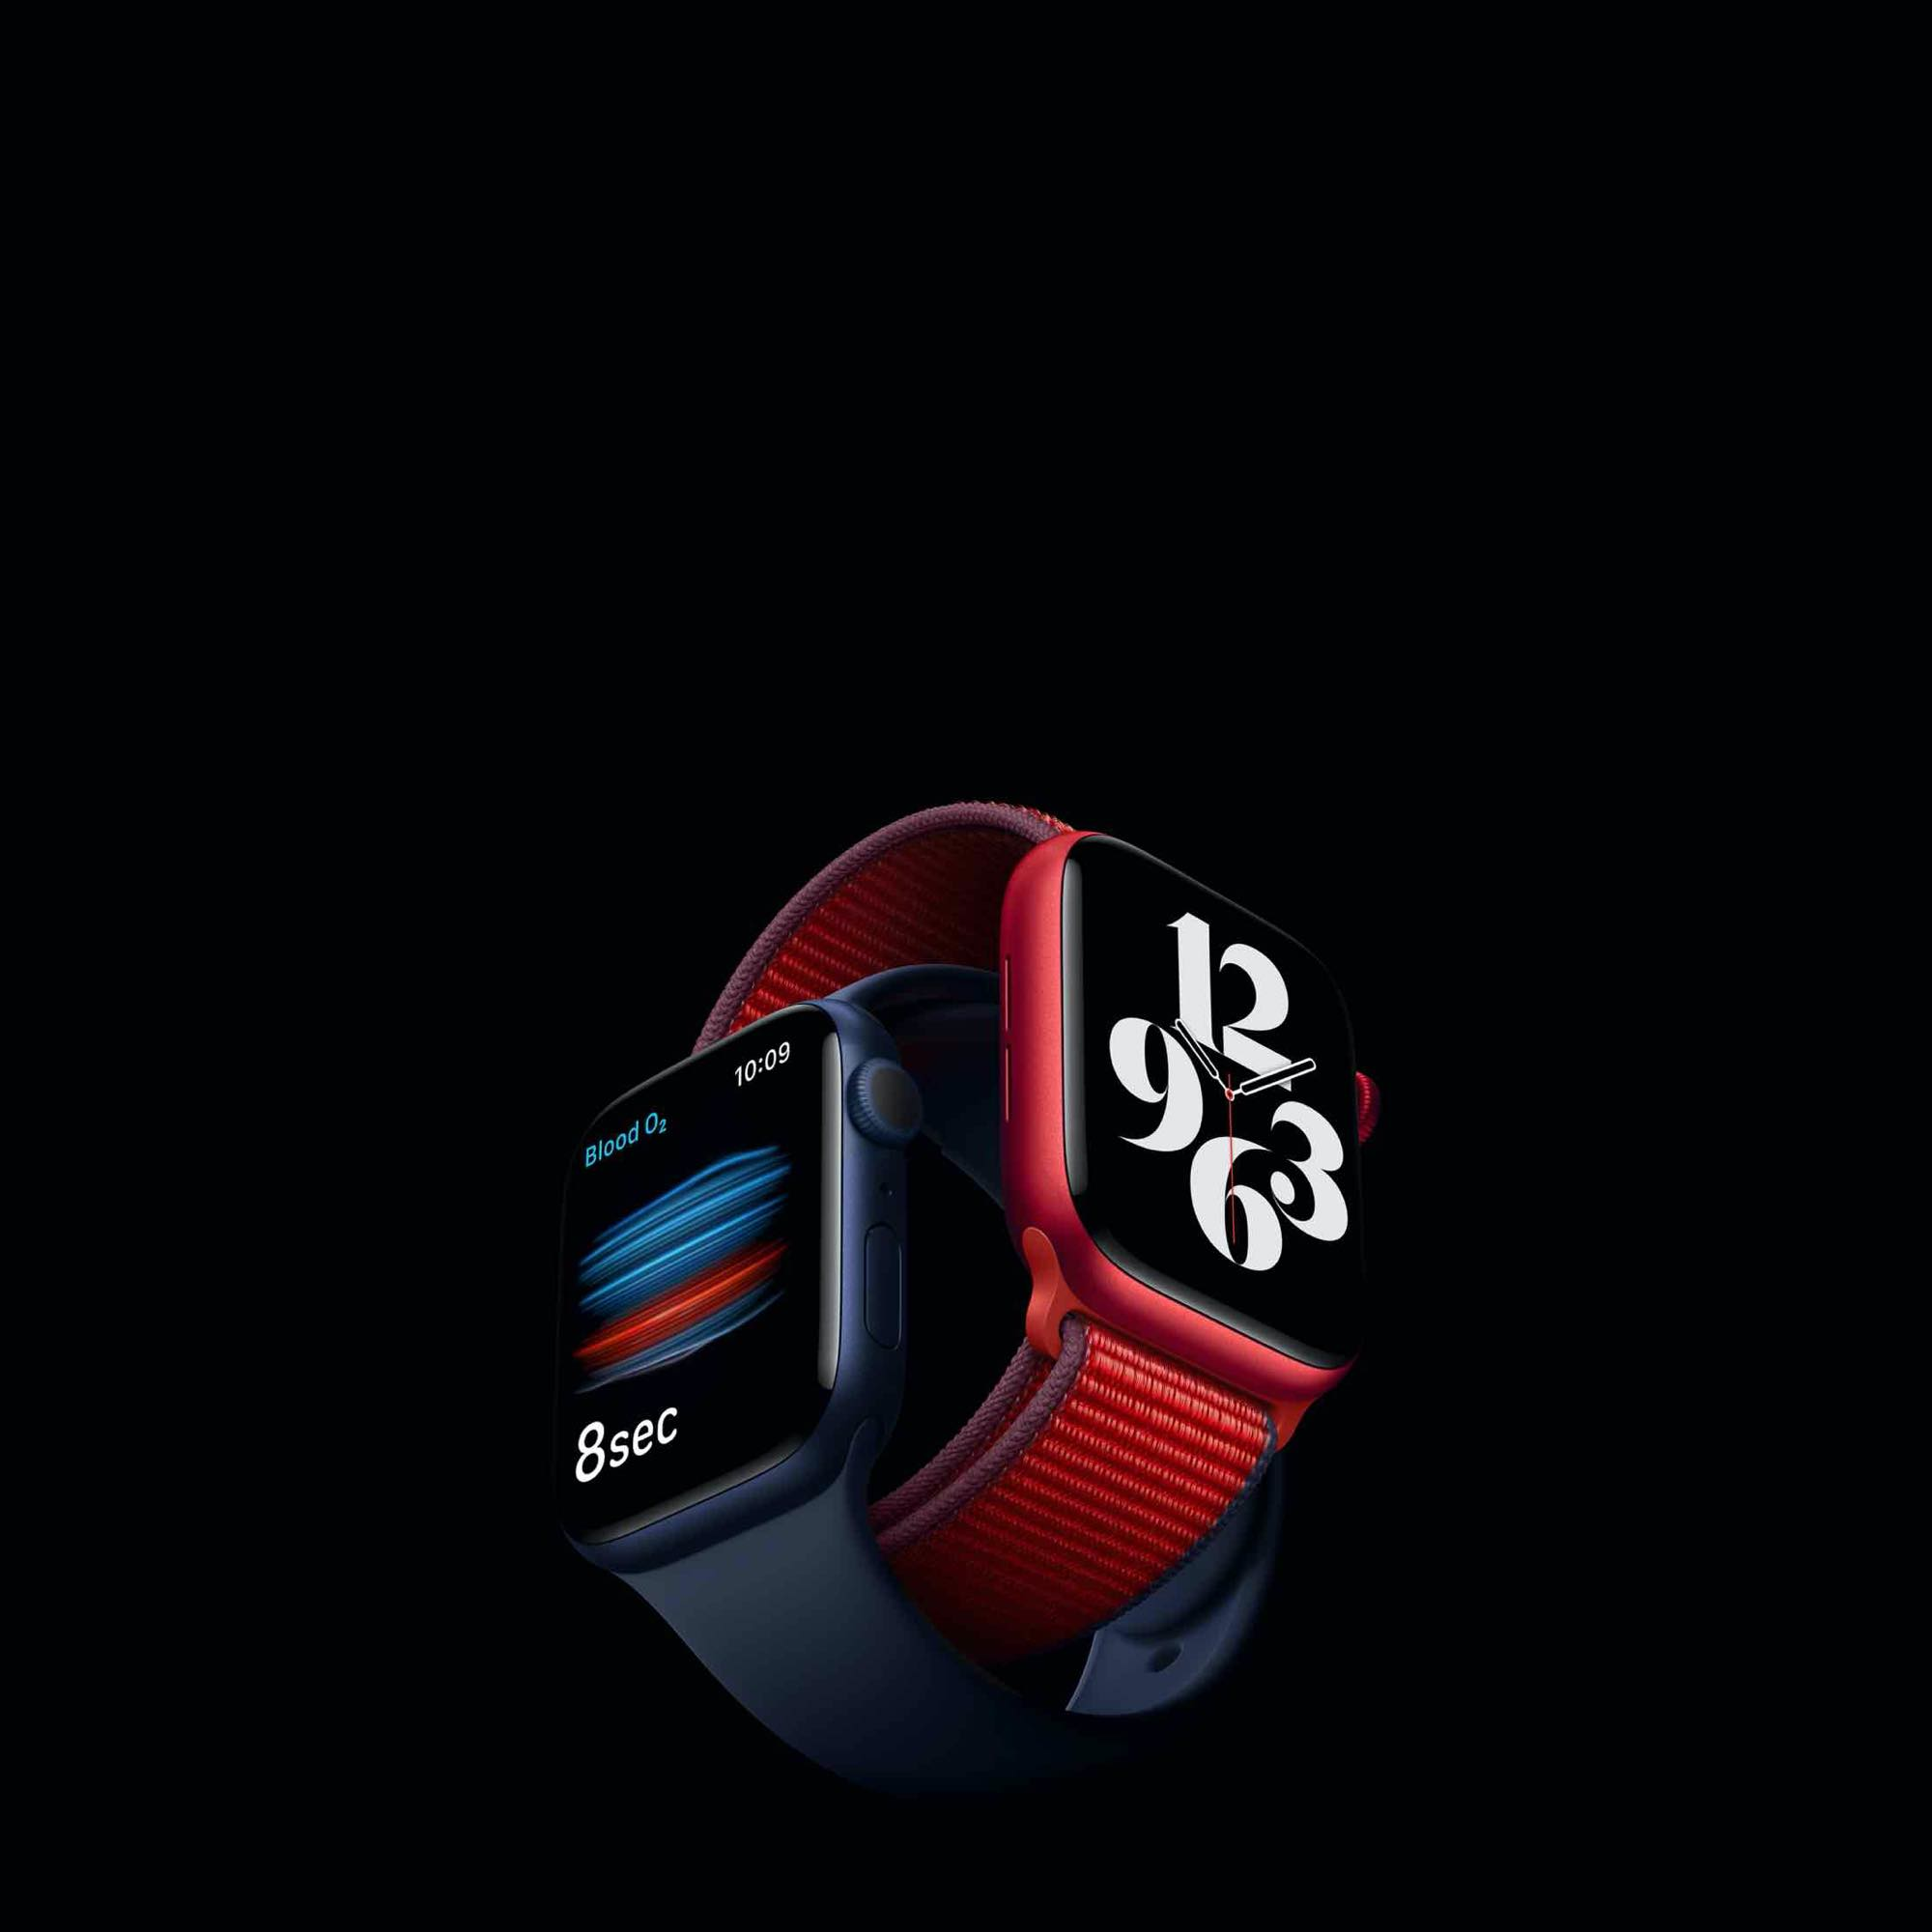 Apple Watch Series 6 Ninove